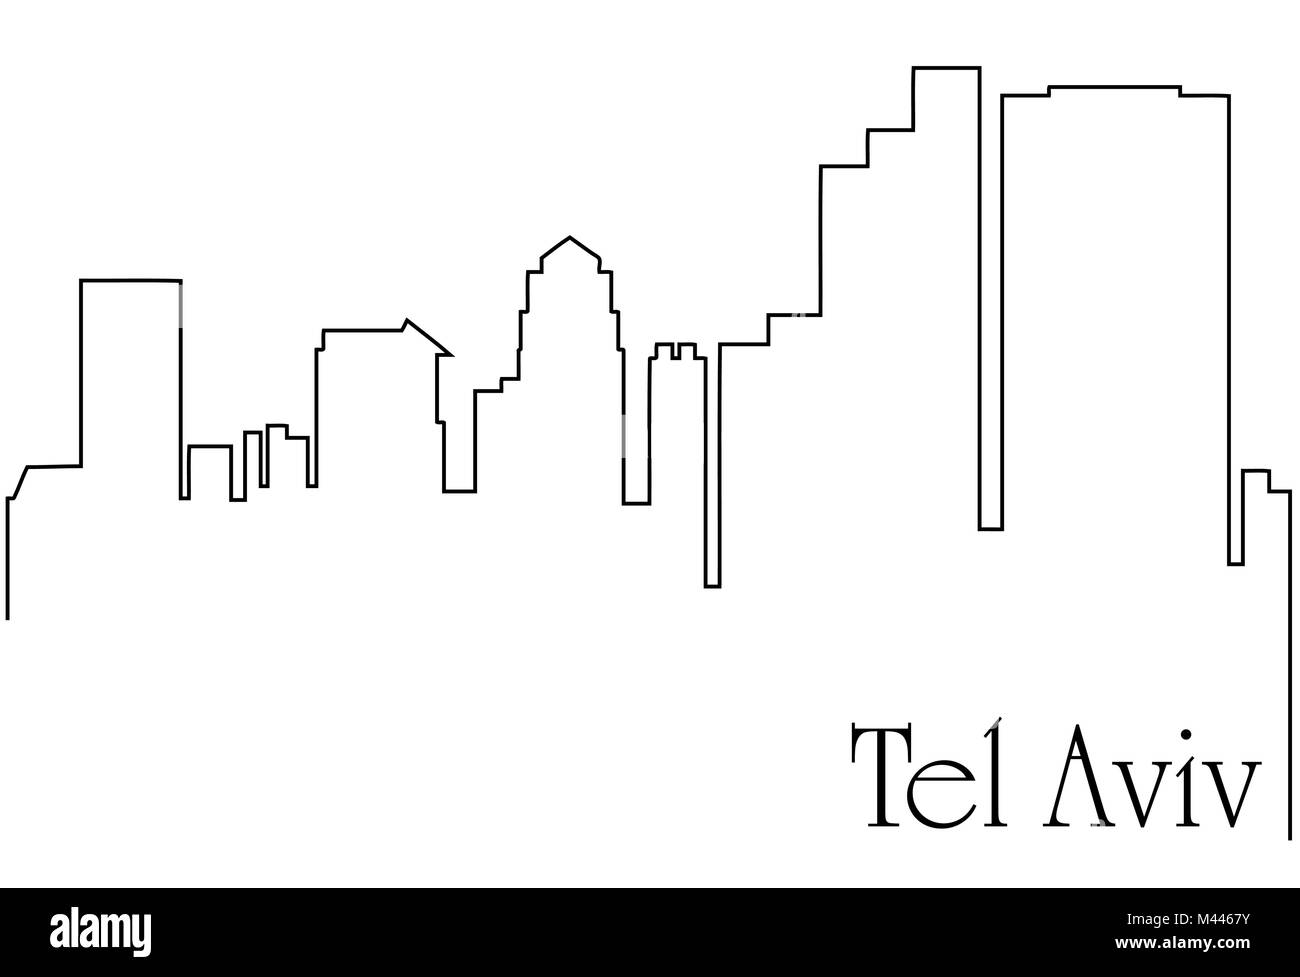 Tel Aviv city one line drawing abstract background with  metropolis cityscape - Stock Image